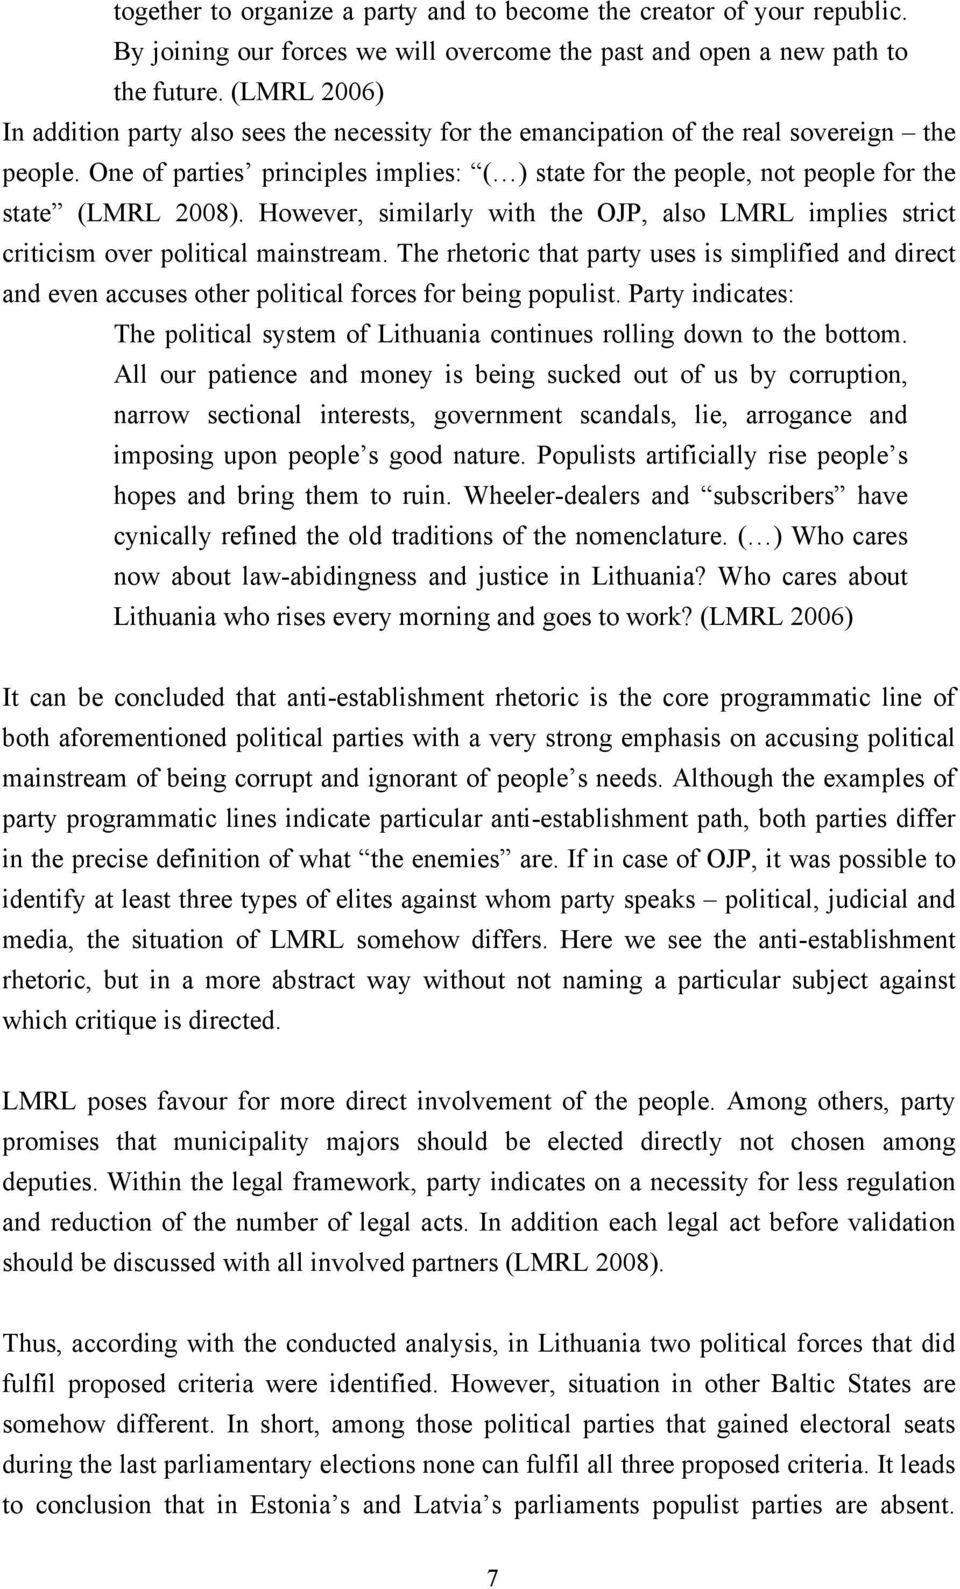 One of parties principles implies: ( ) state for the people, not people for the state (LMRL 2008). However, similarly with the OJP, also LMRL implies strict criticism over political mainstream.